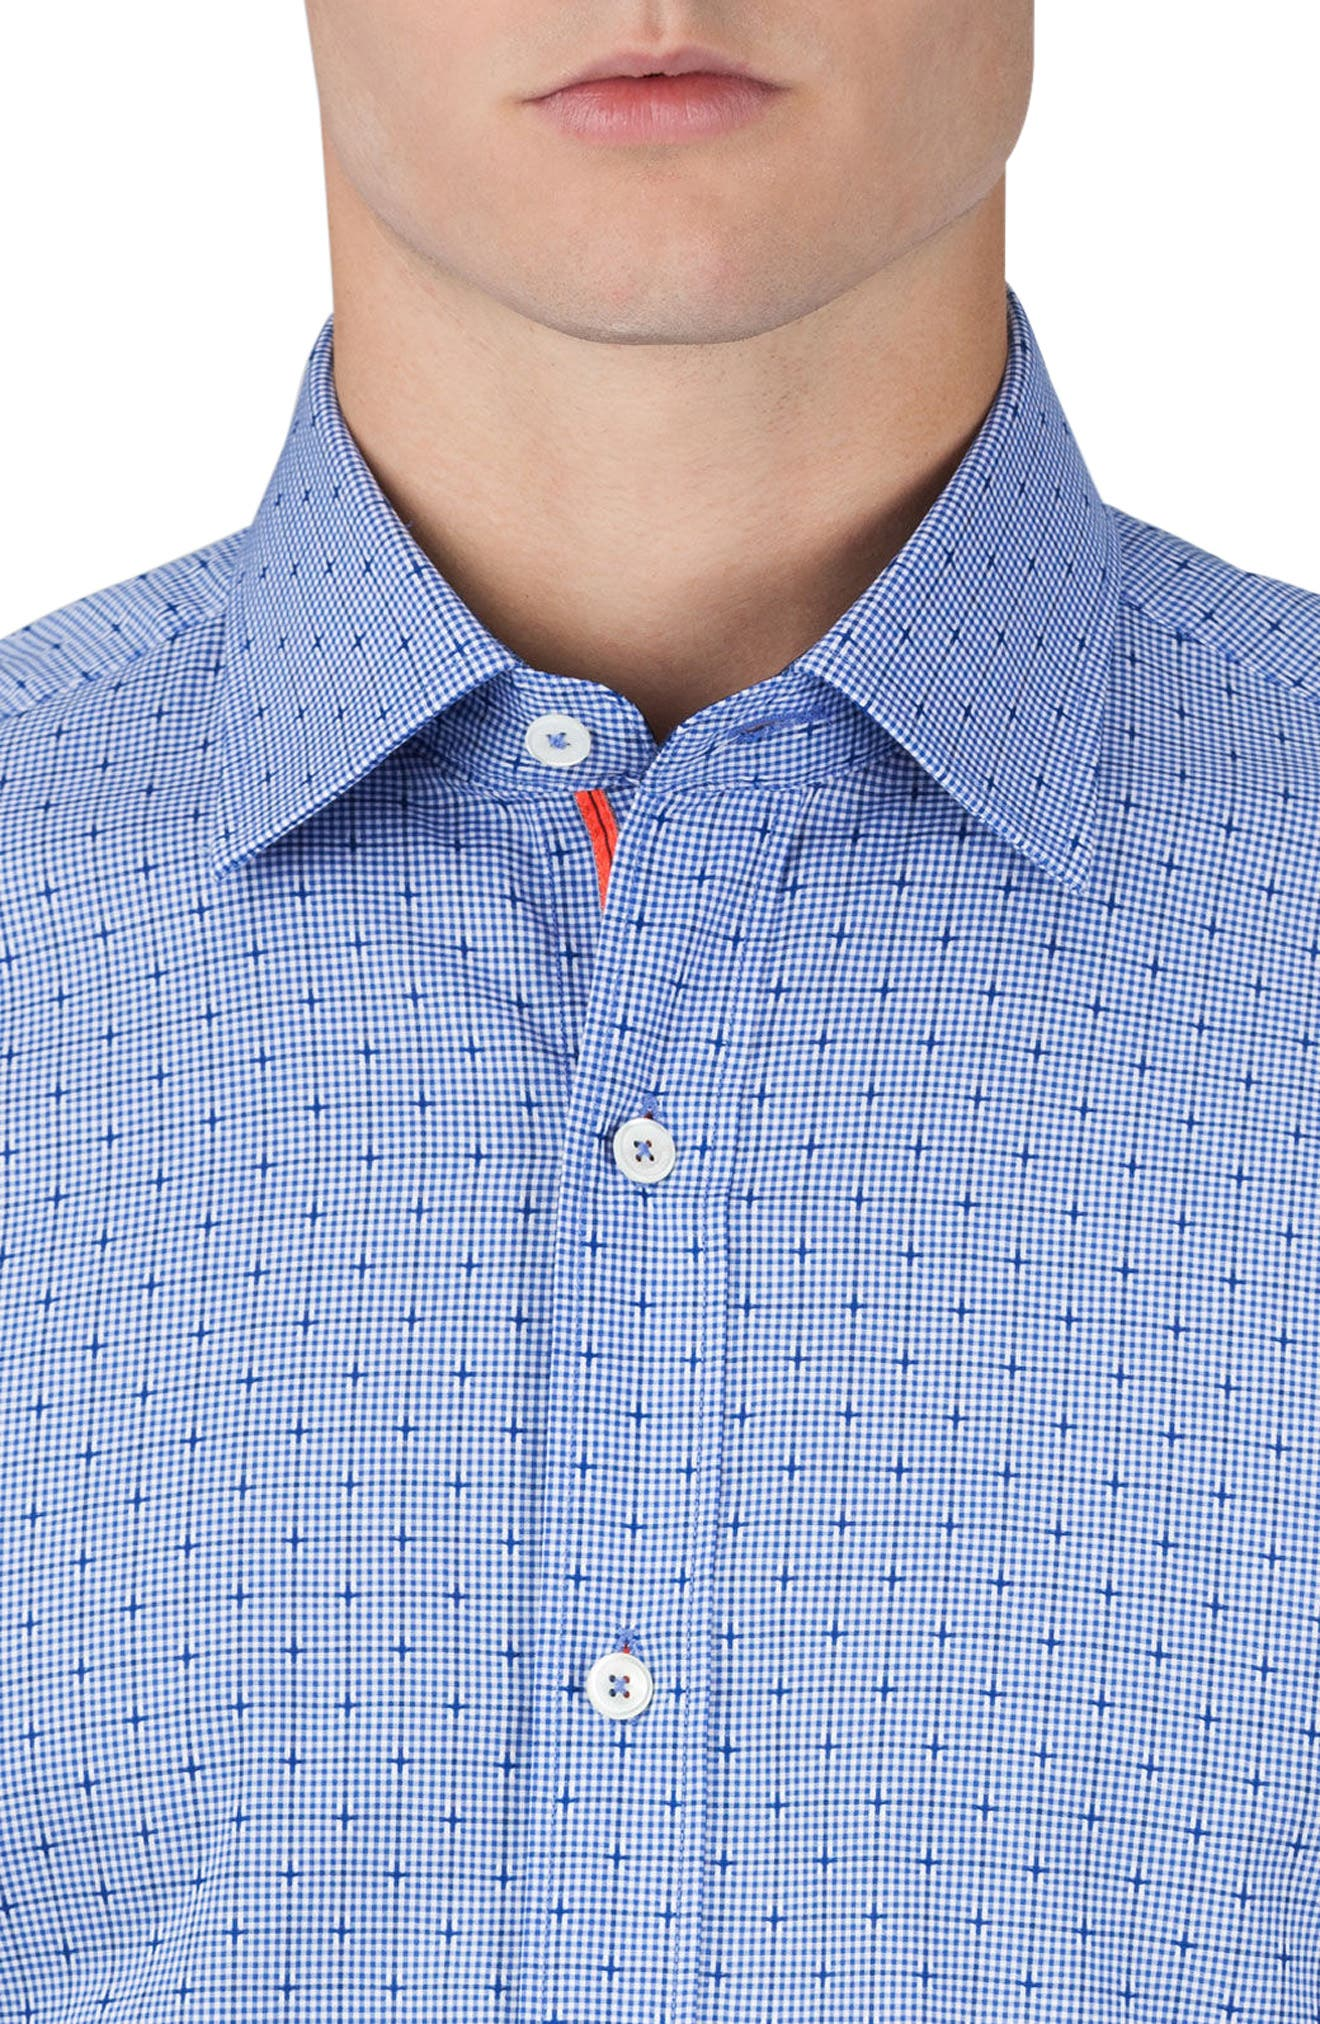 Classic Fit Layered Gingham Print Sport Shirt,                             Alternate thumbnail 3, color,                             411